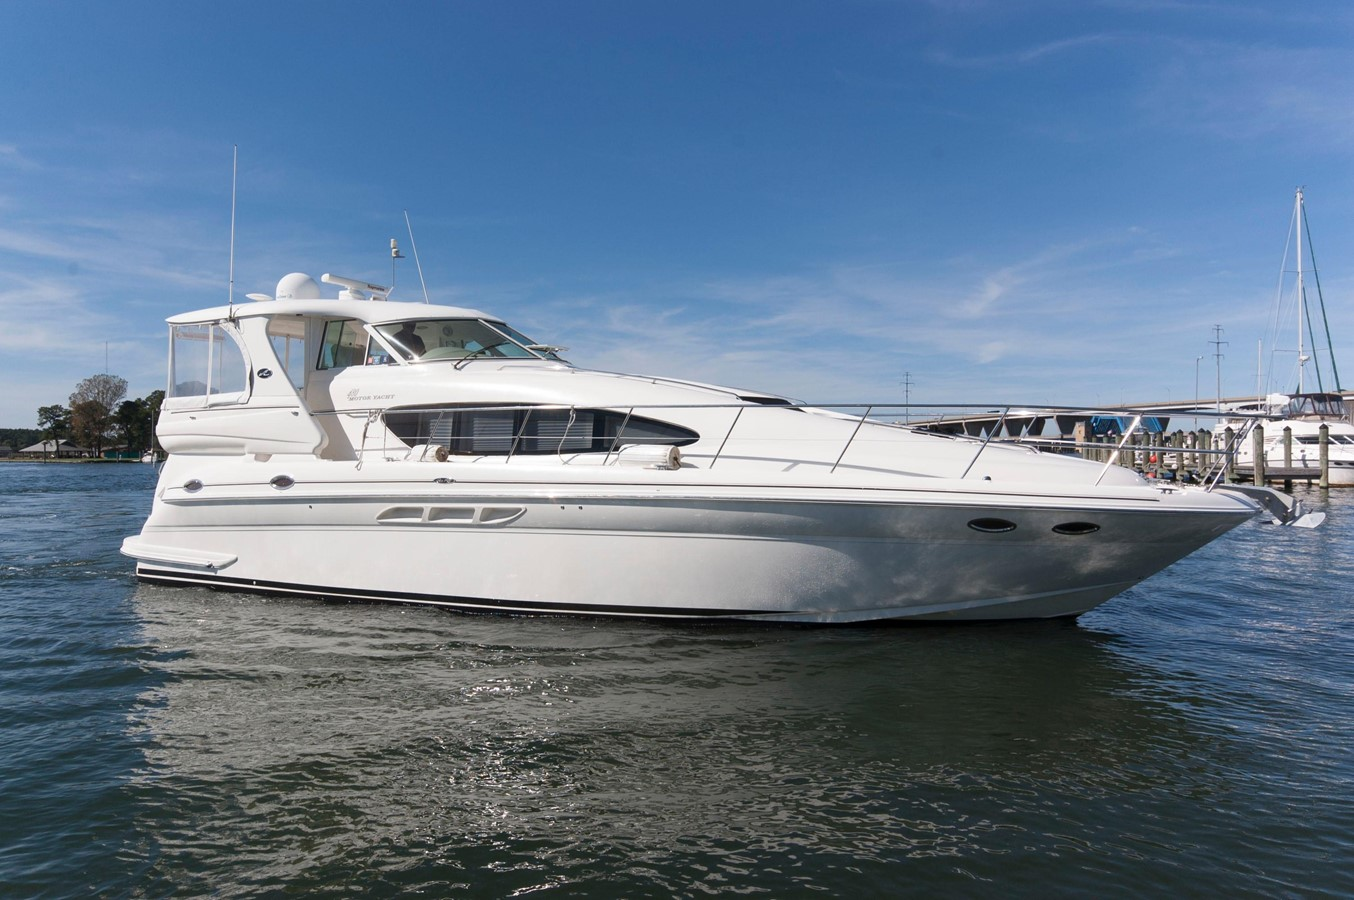 2004 sea ray 480 motor yacht for Ocean yachts 48 motor yacht for sale